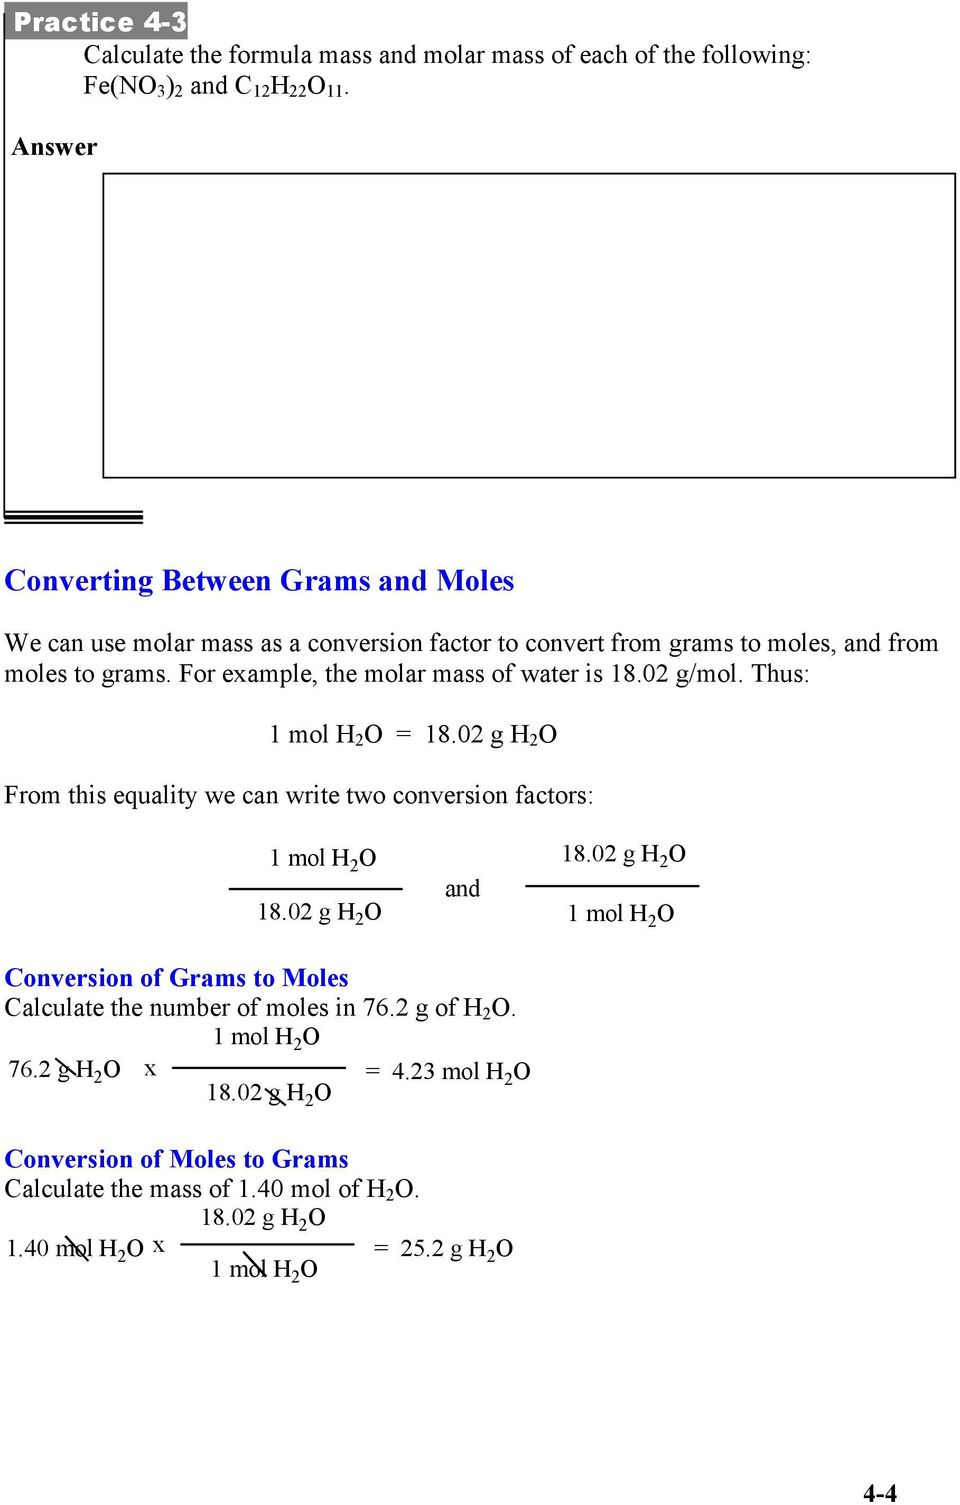 The formula mass of C 12 H 22 O 11 is 342.34 amu, so the molar mass is 342.34 g/mol.